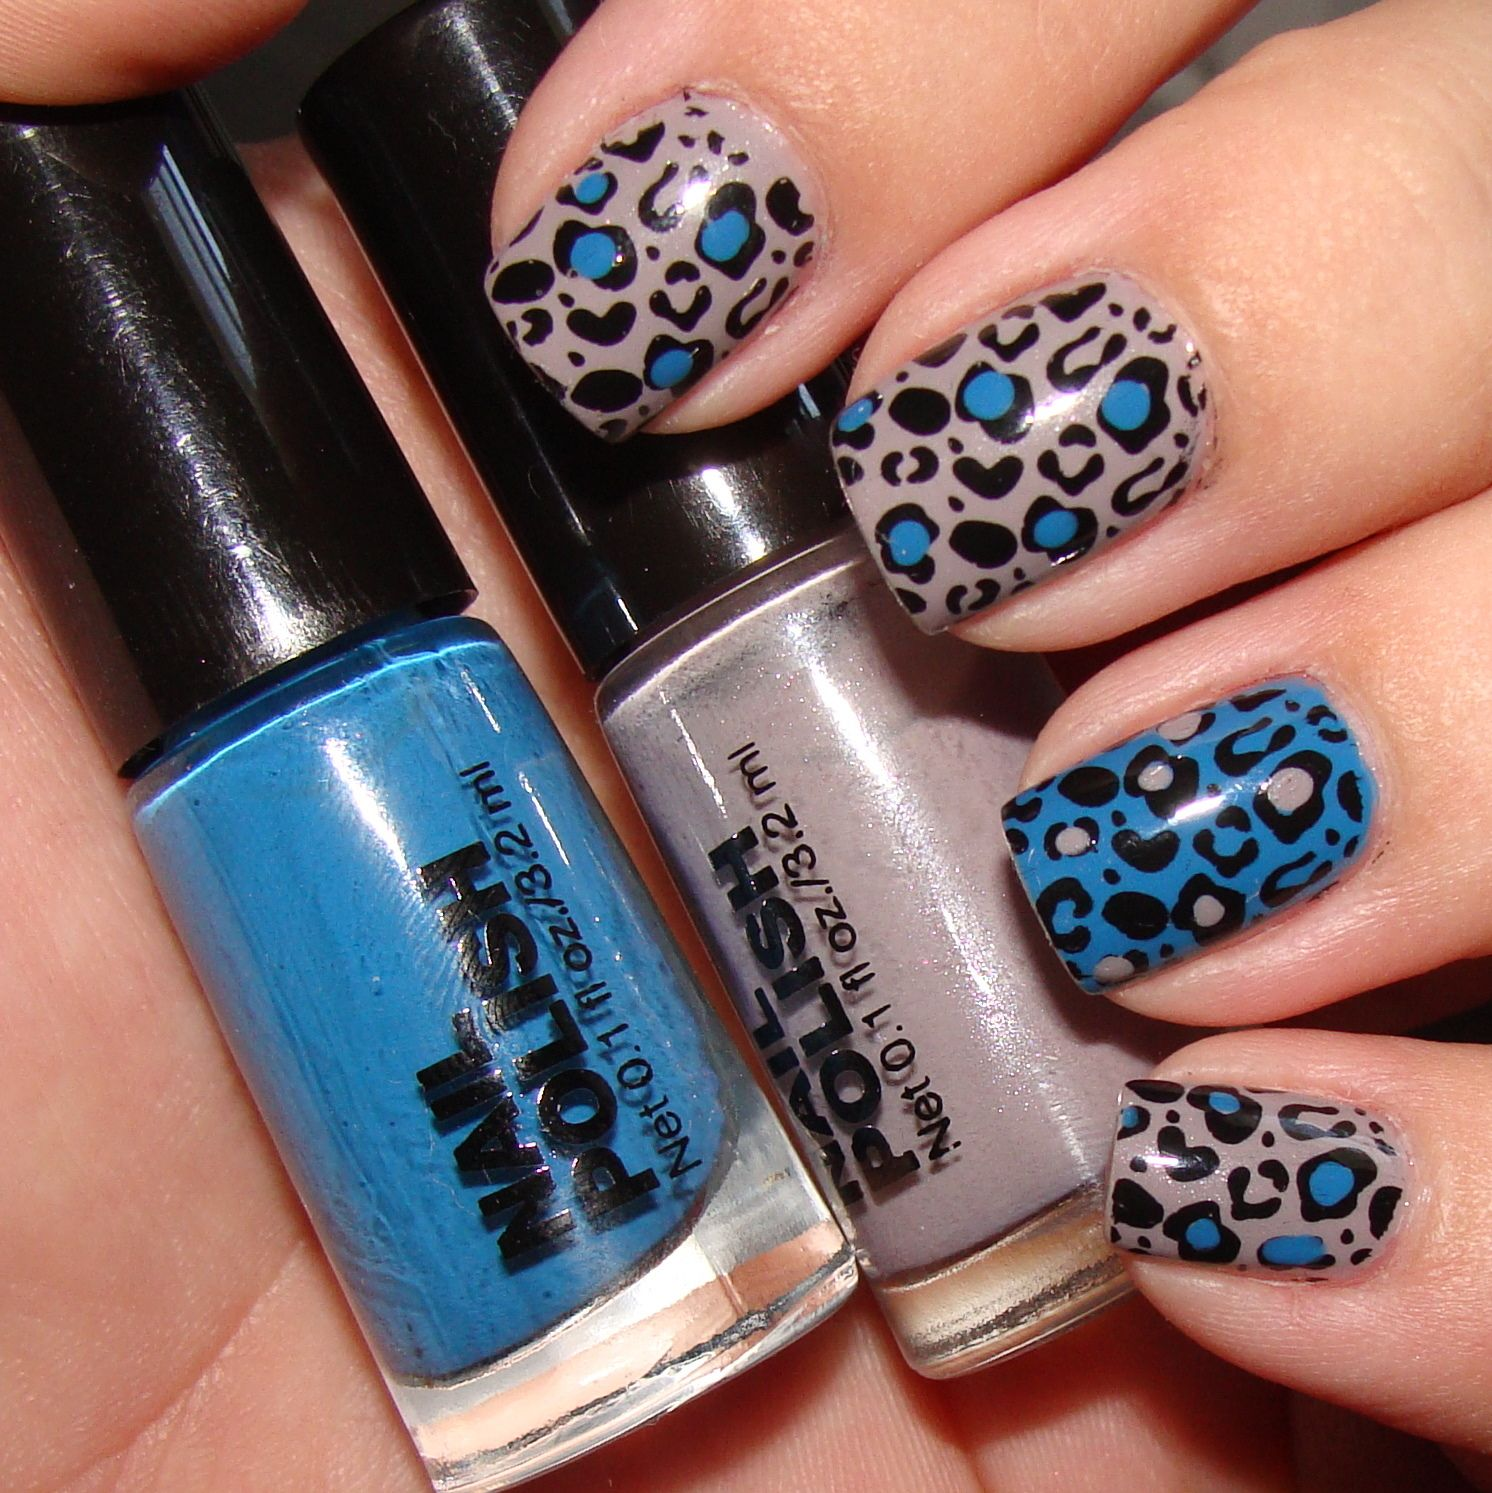 Crazy+Nail+Designs | Best Crazy Nail Paint Designs | jayswagger ...